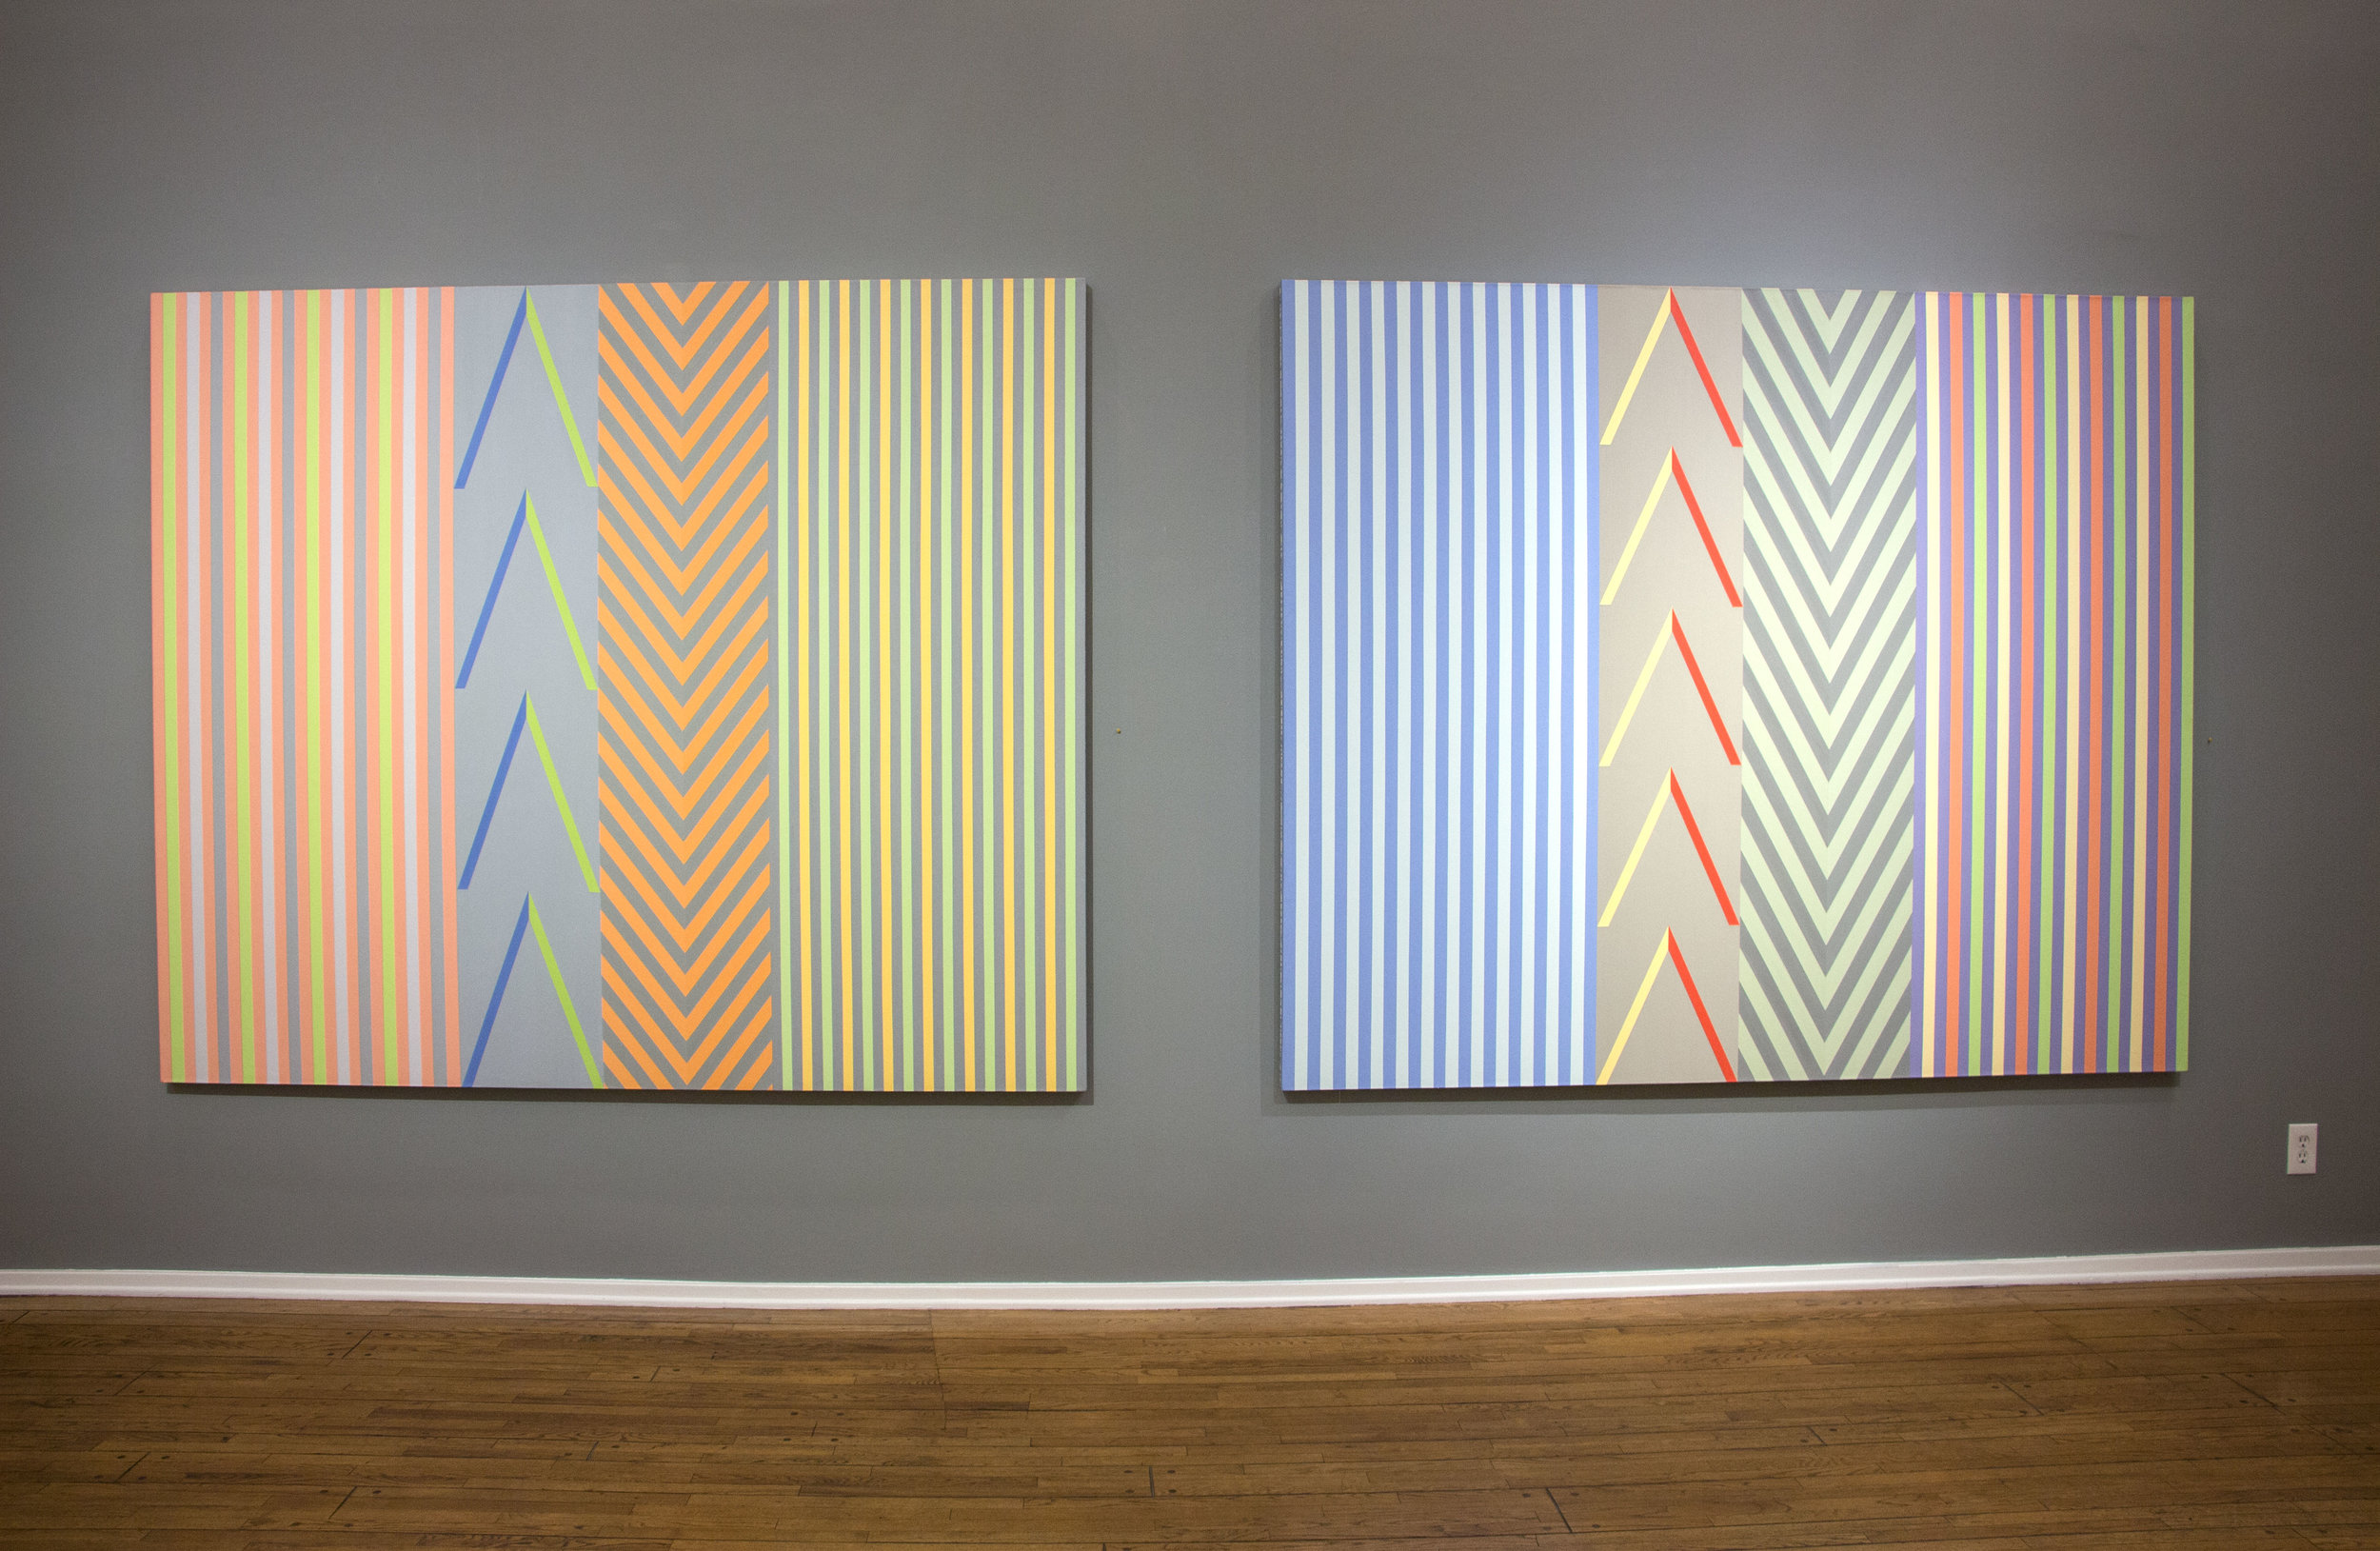 Informed by Rhythm: Recent work by James Little